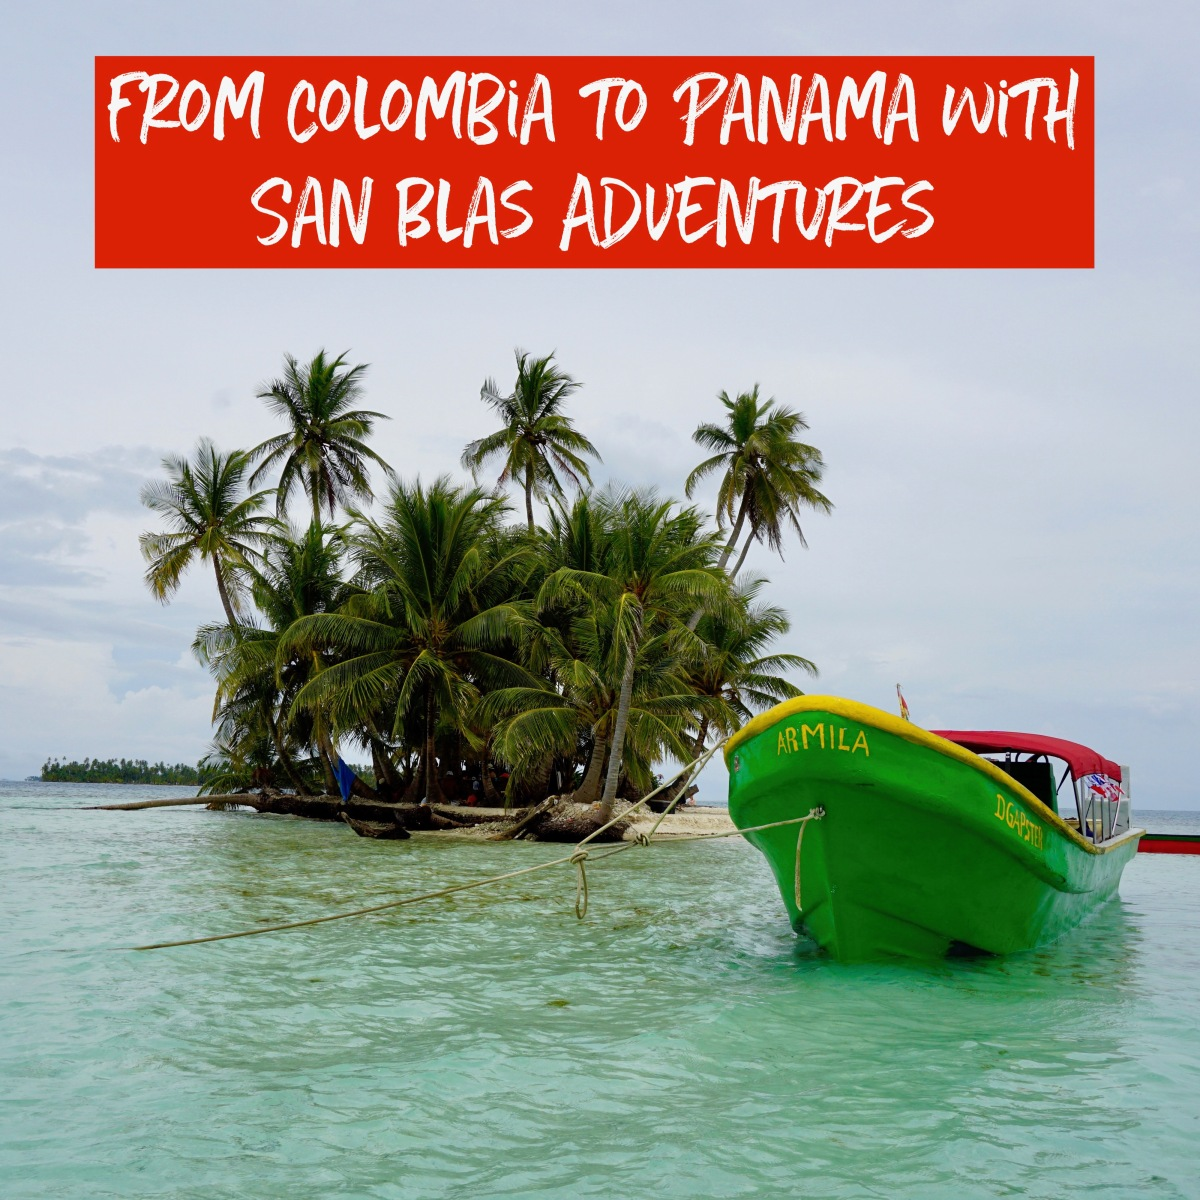 Travelling from Colombia to Panama with San Blas Adventures